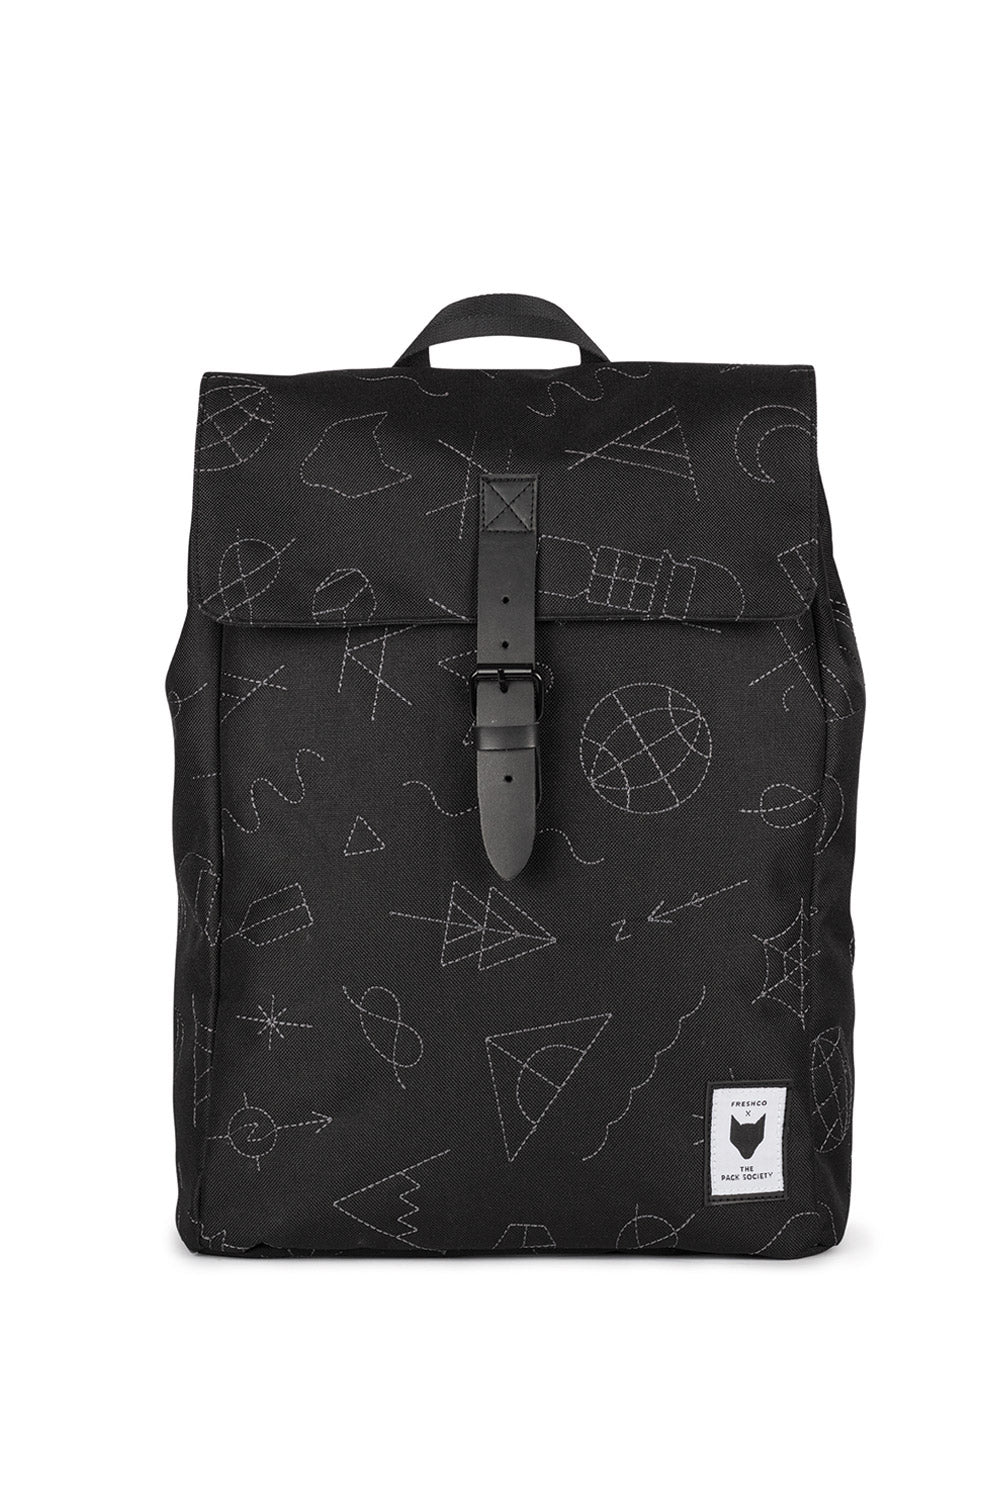 THE PACK SOCIETY - SQUARE BLACK EMBROIDERY BACKPACK - Ozon Boutique 10bf4224aab20